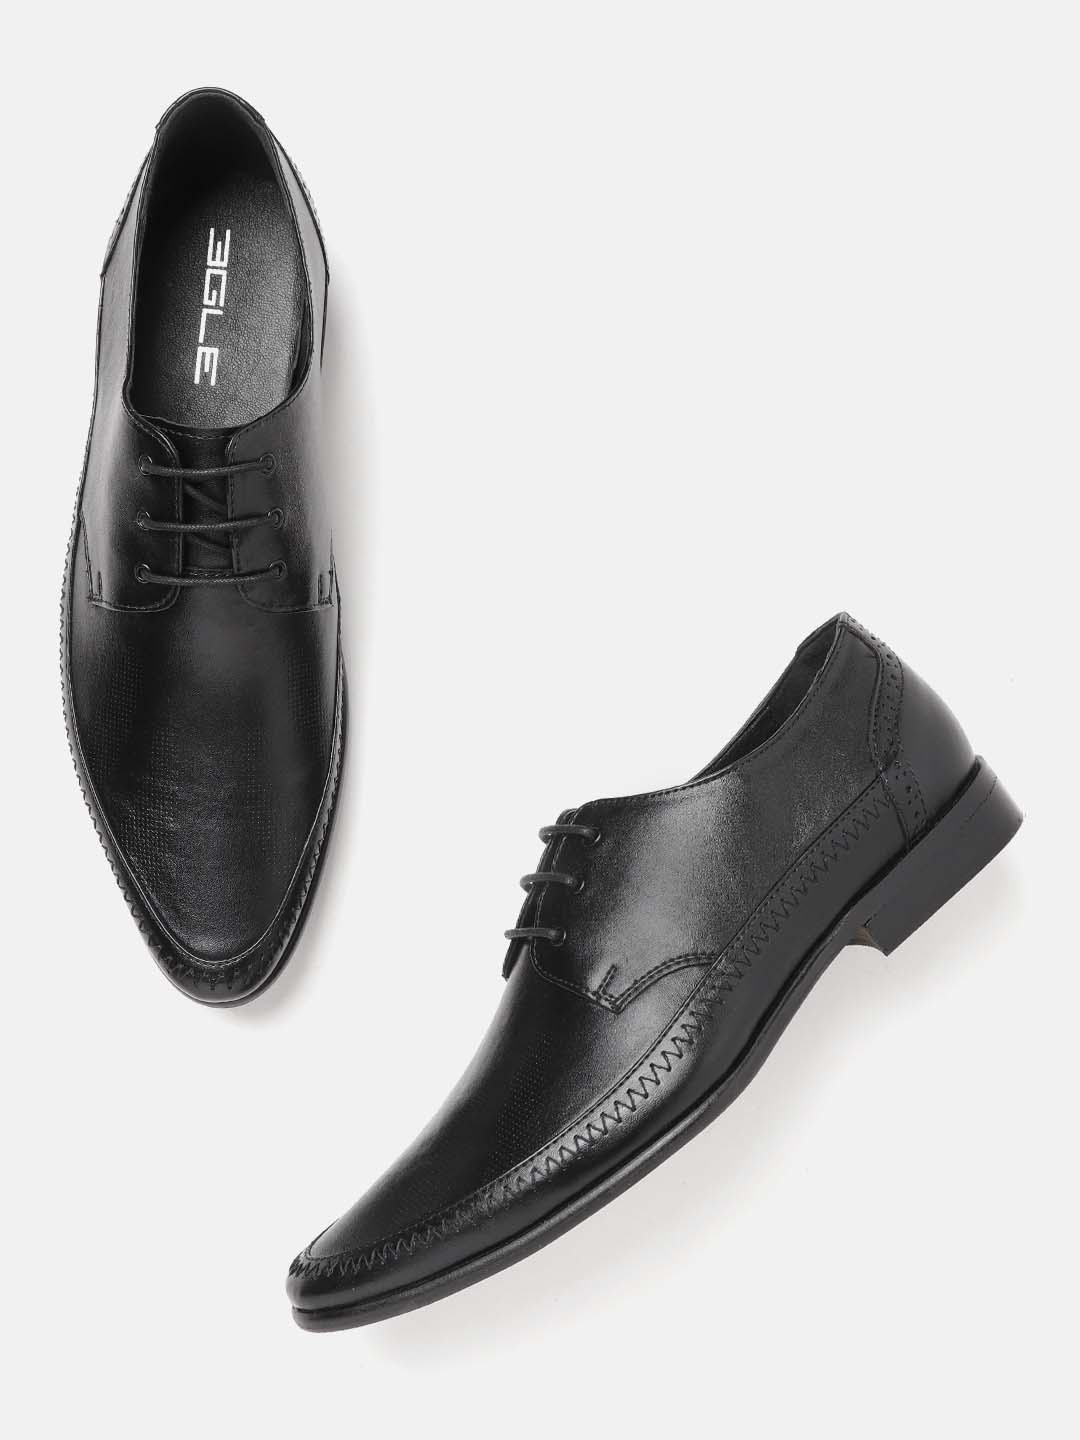 Black Lace-Up Formal Shoes